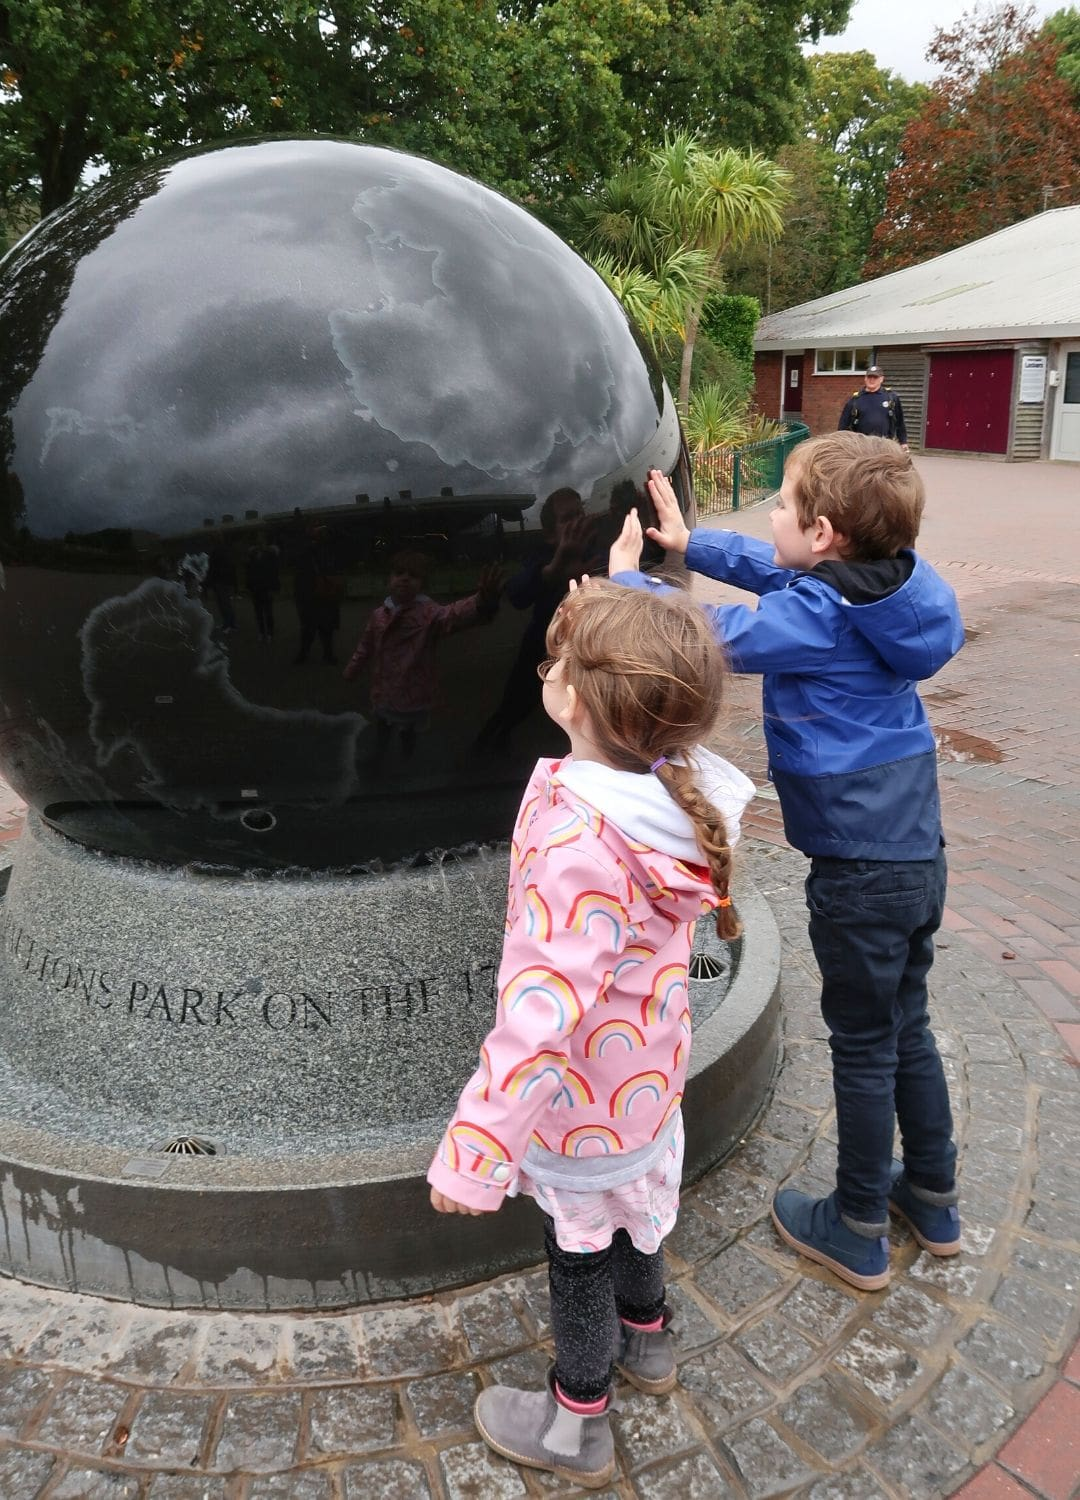 Globe Fountain near the entrance to Paulton's Park with small boy and girl touching it.